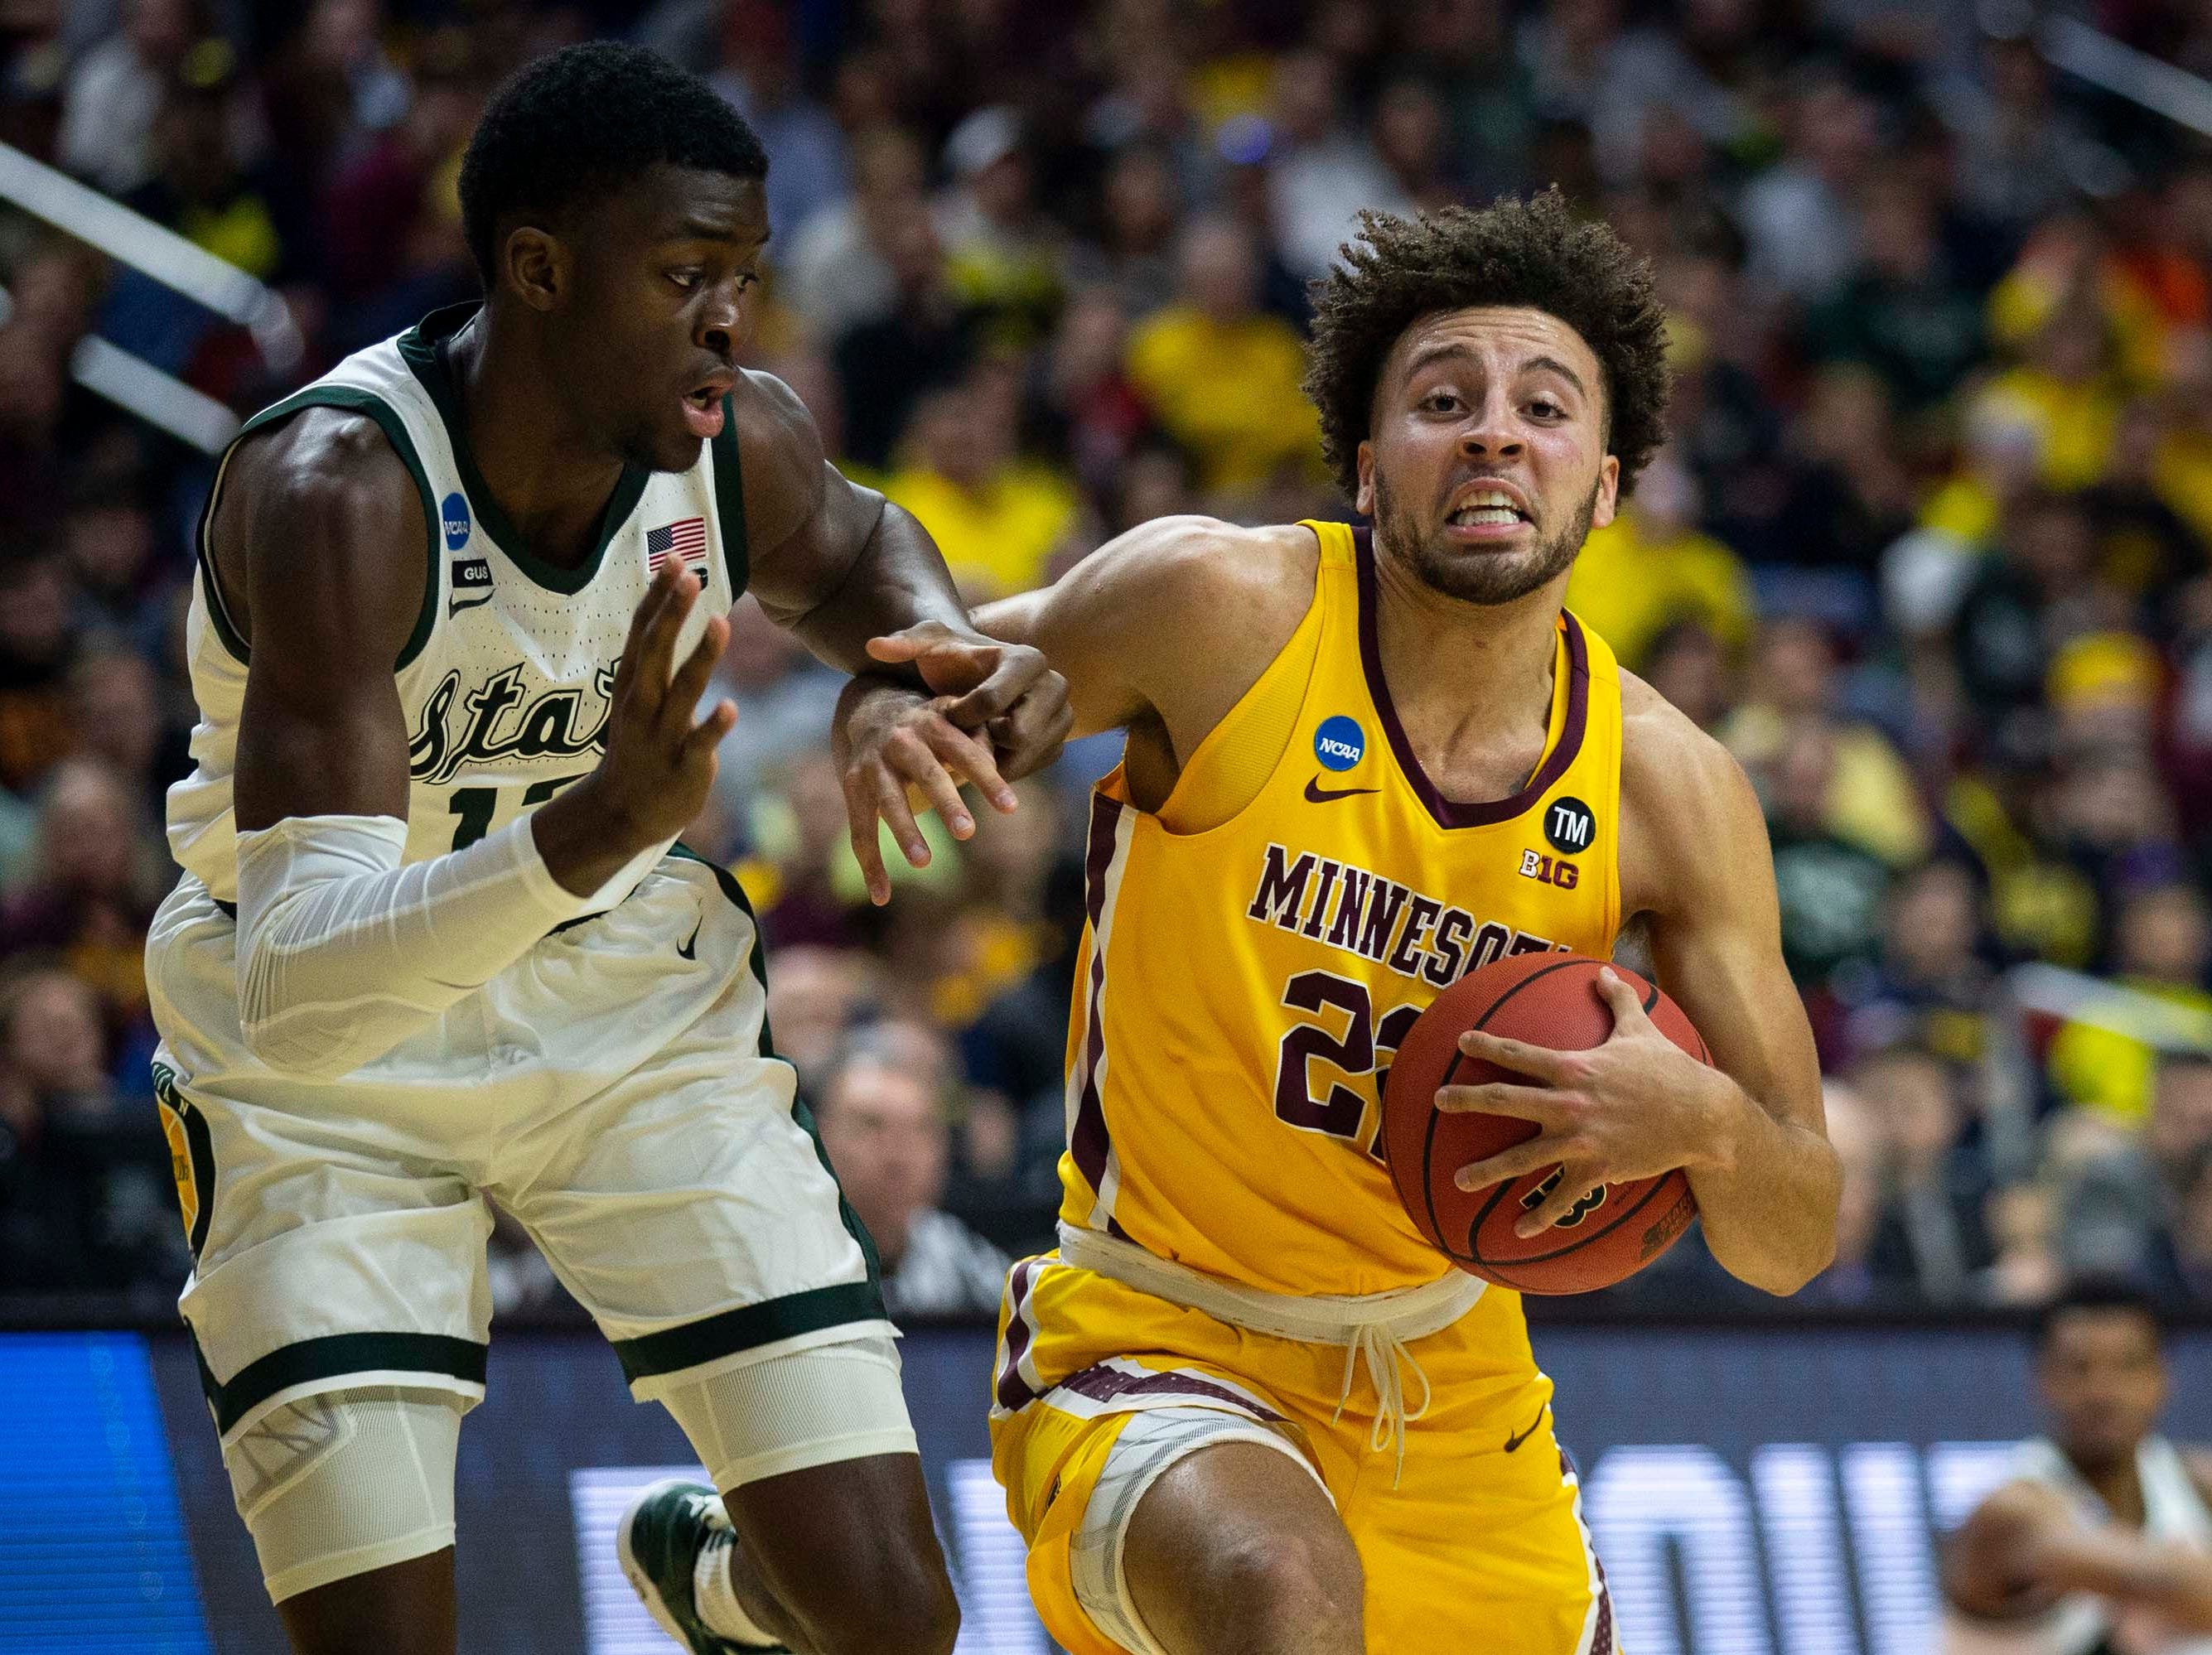 Minnesota's Gabe Kalscheur drives to the hoop during the NCAA Tournament second-round match-up between Minnesota and Michigan State on Saturday, March 23, 2019, in Wells Fargo Arena in Des Moines, Iowa.